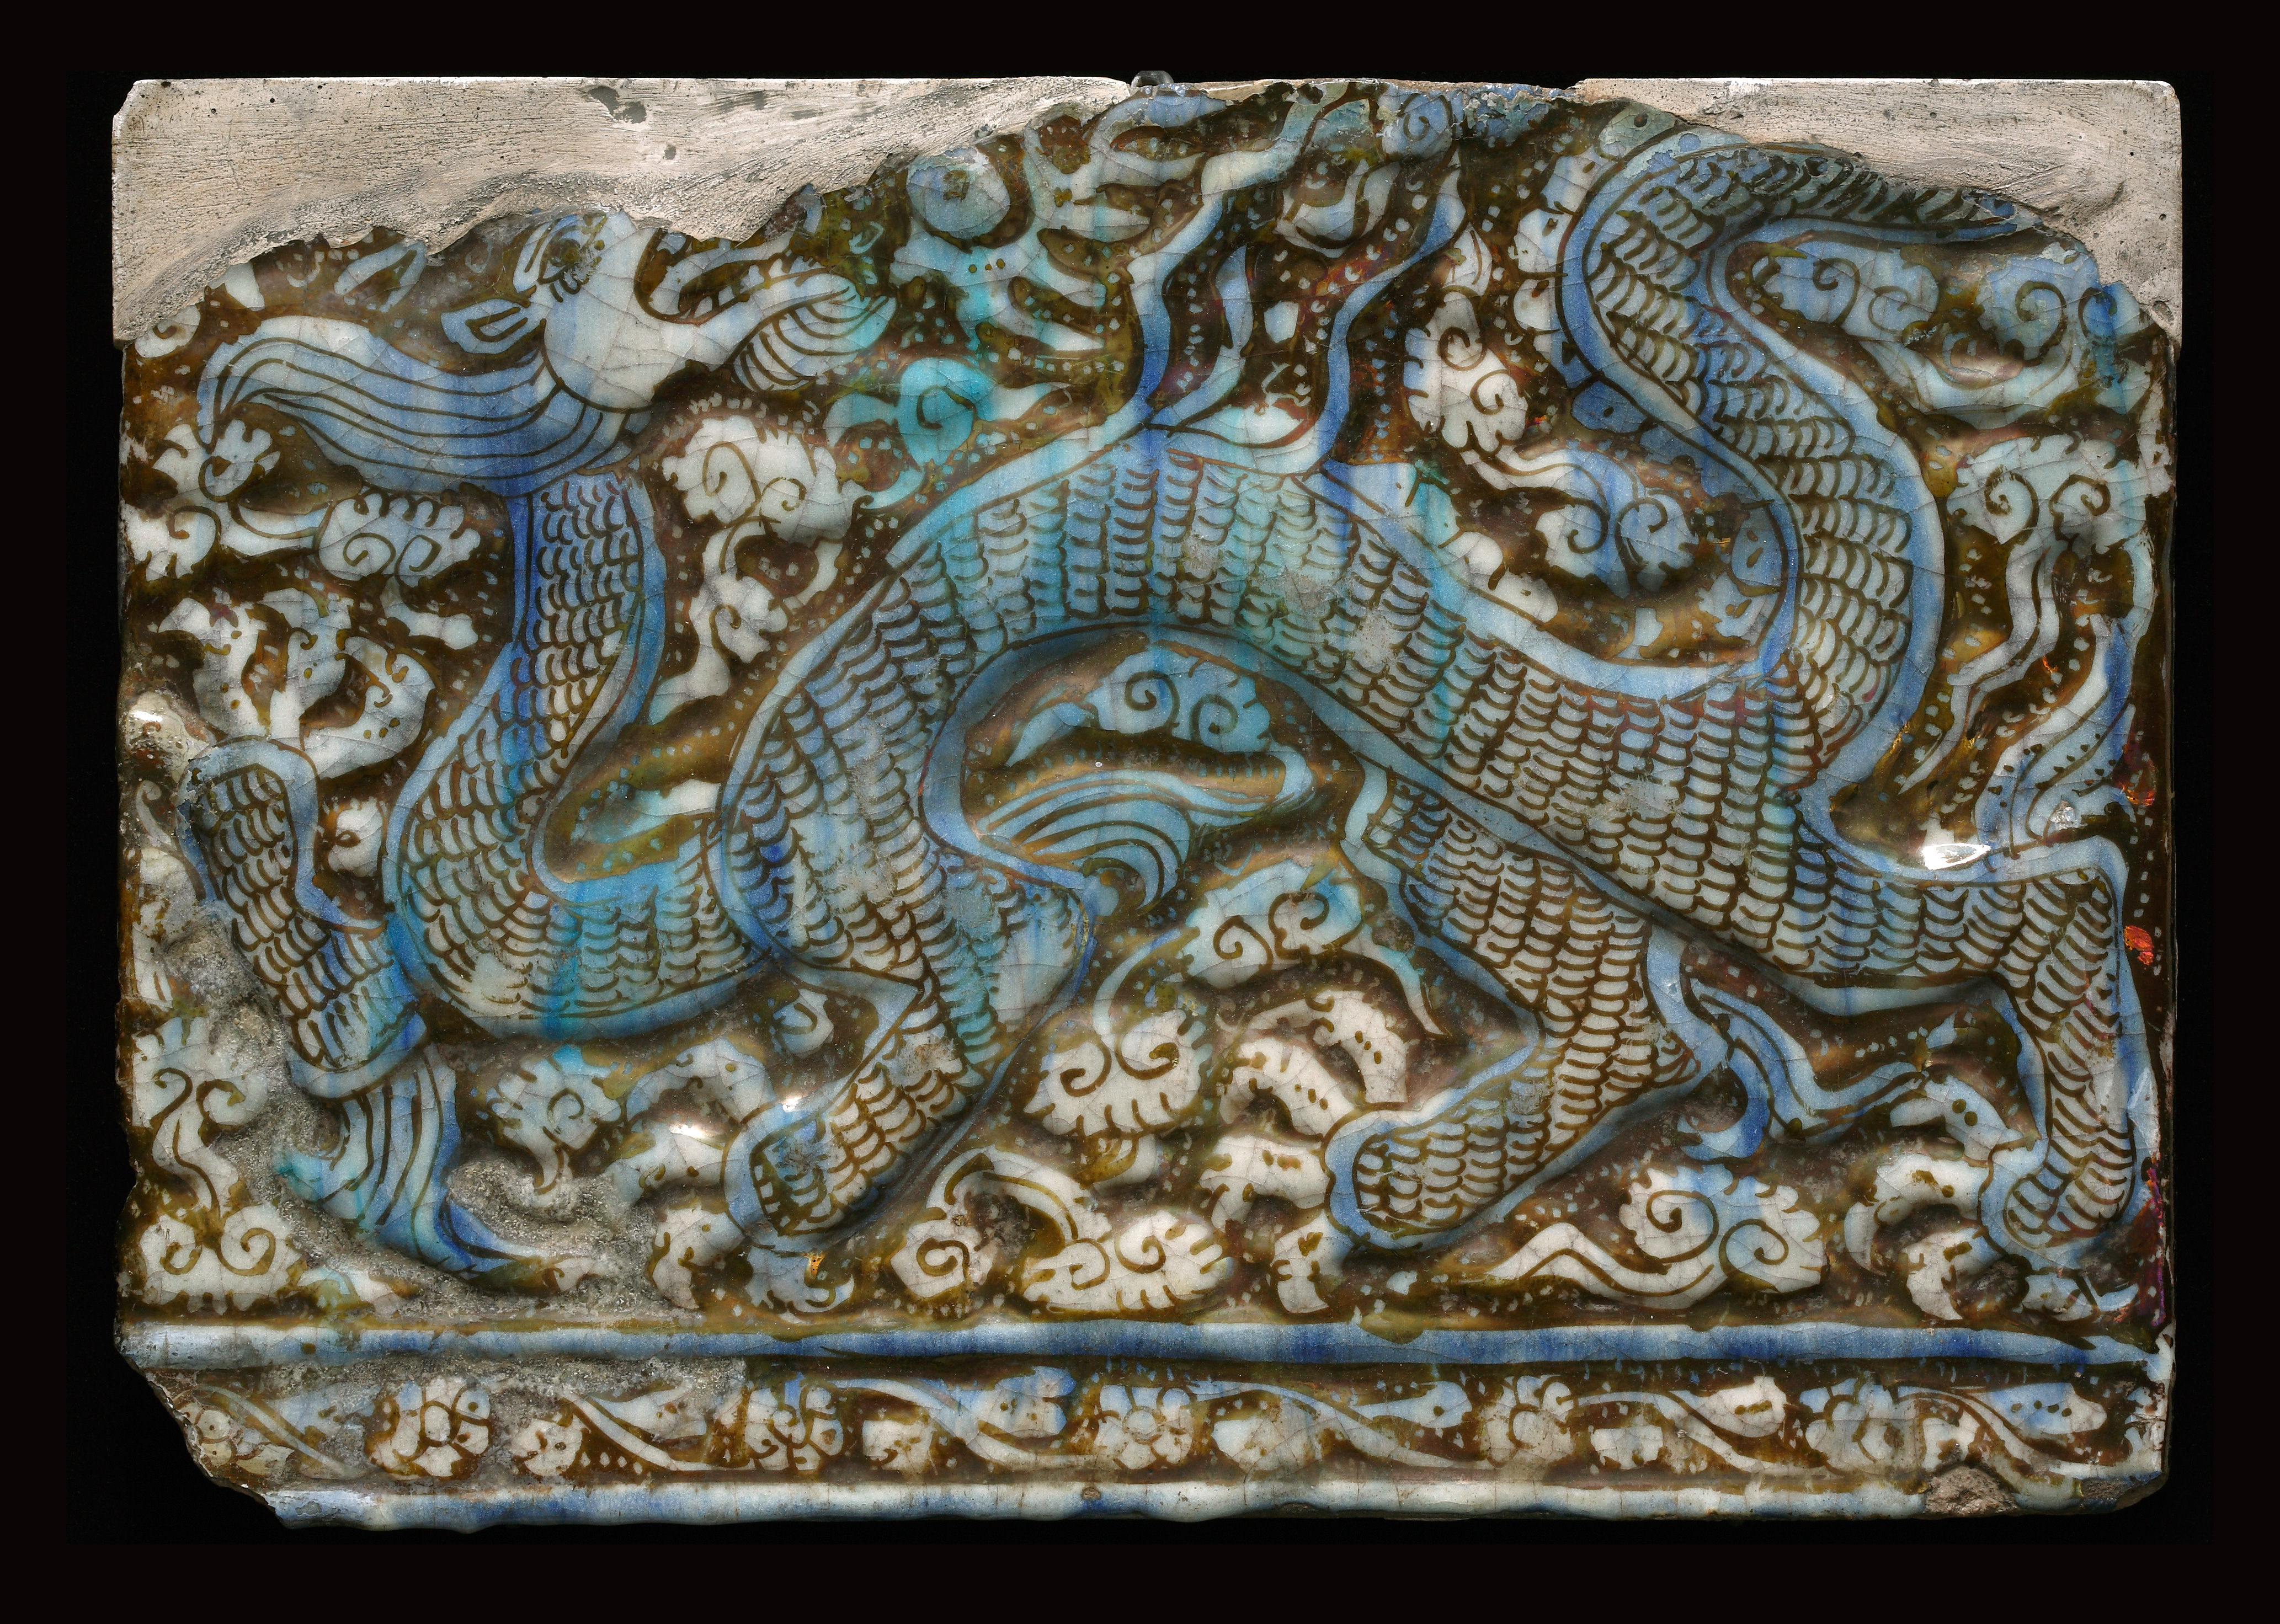 Symbolism in islamic art the david collection wide k82 isl 191 drager buycottarizona Choice Image